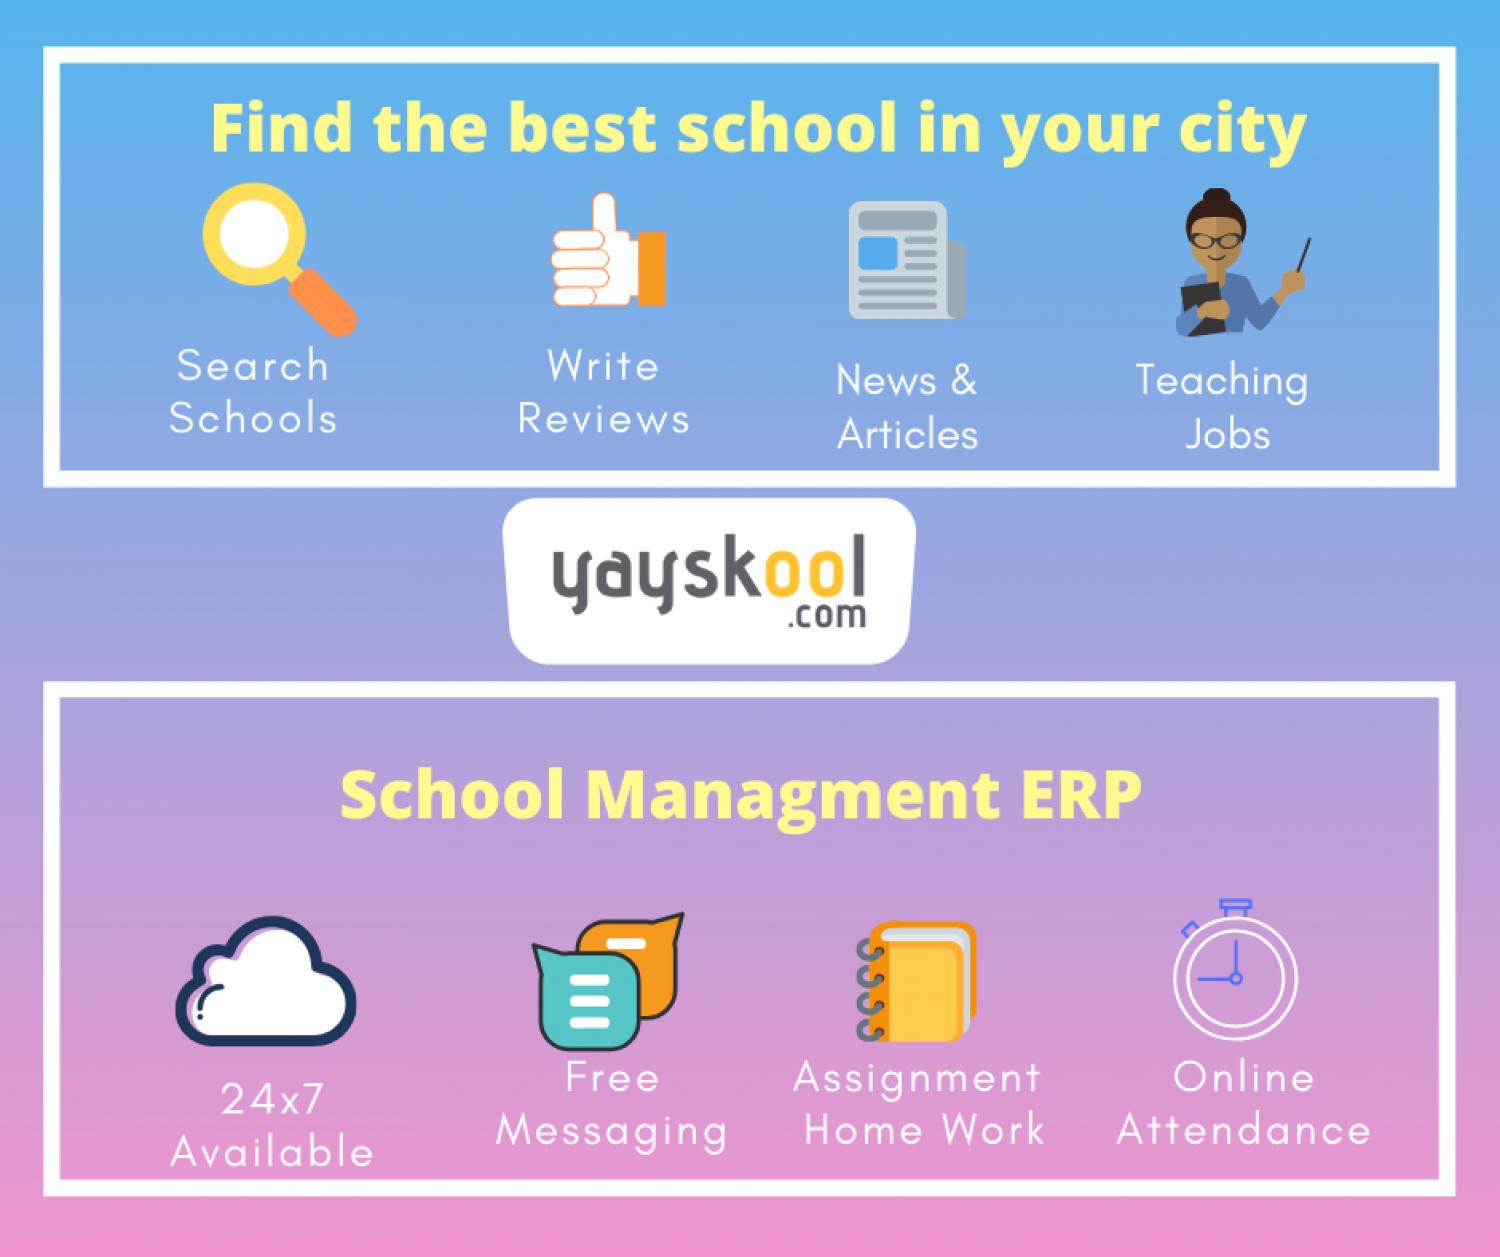 Find The Best School For Your Child Infographic